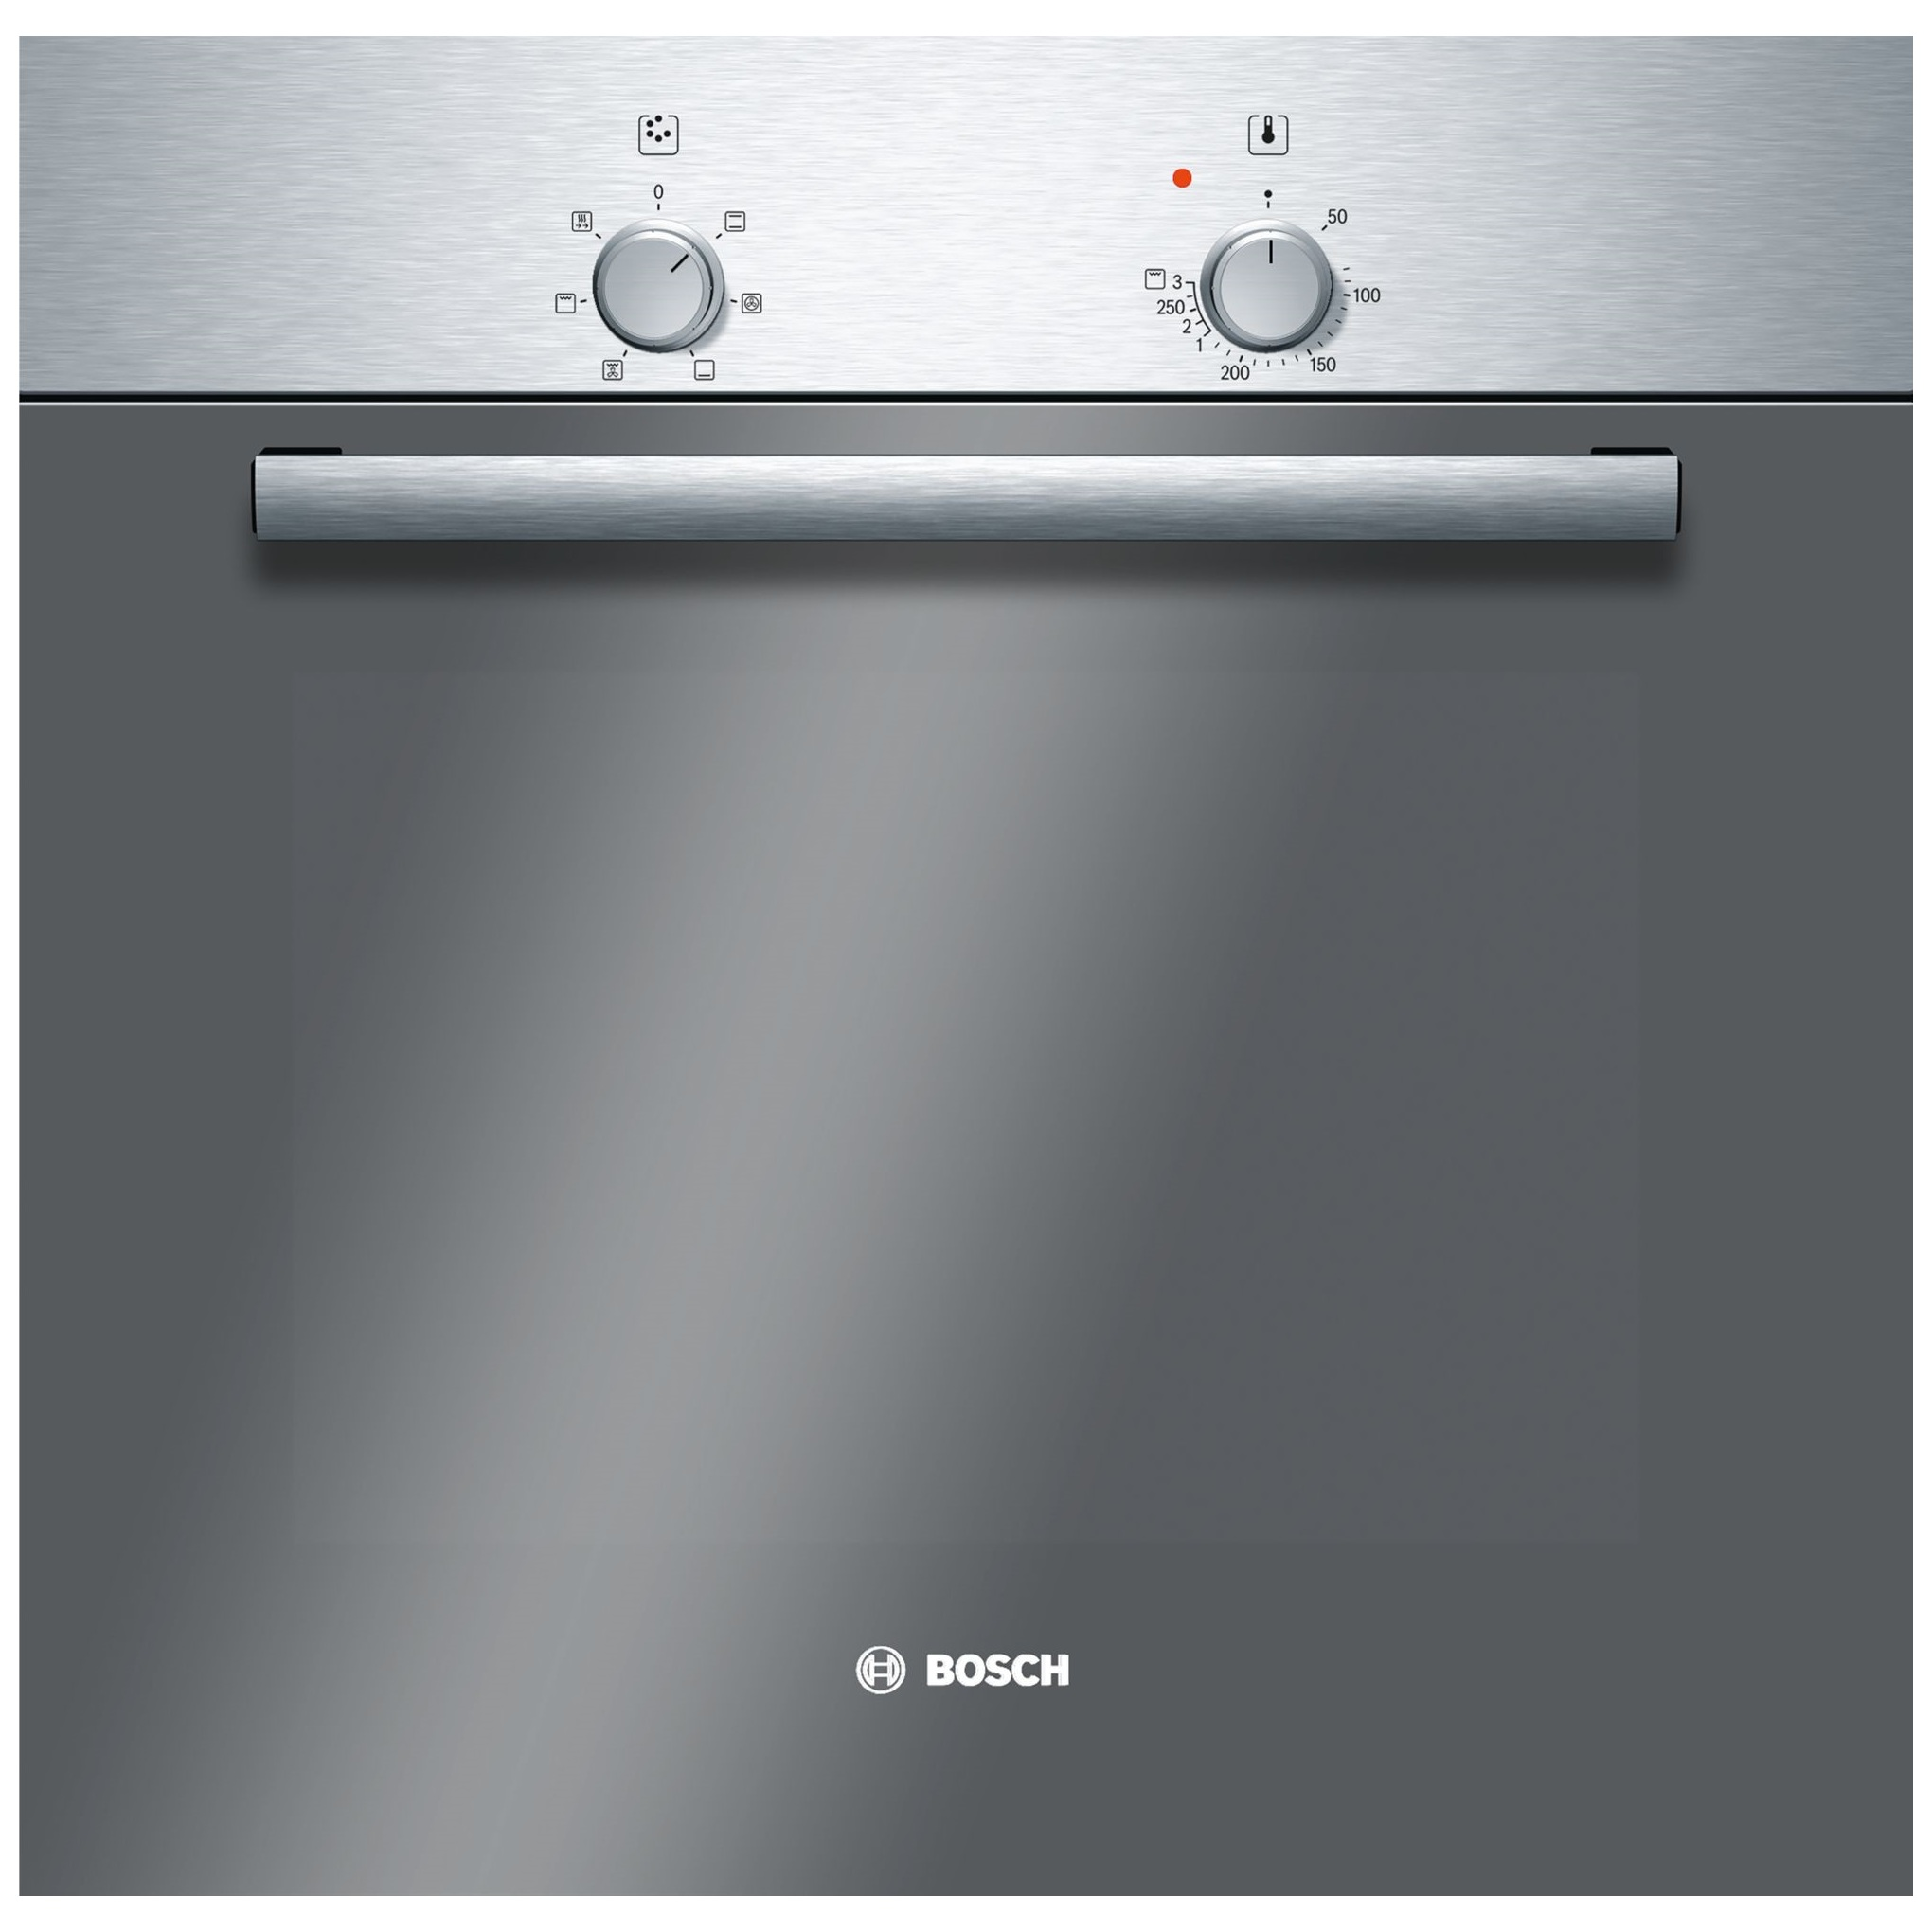 Bosch Microwave Bosch Built In Microwave Hmt75m654m Price In Oman Sale On Bosch